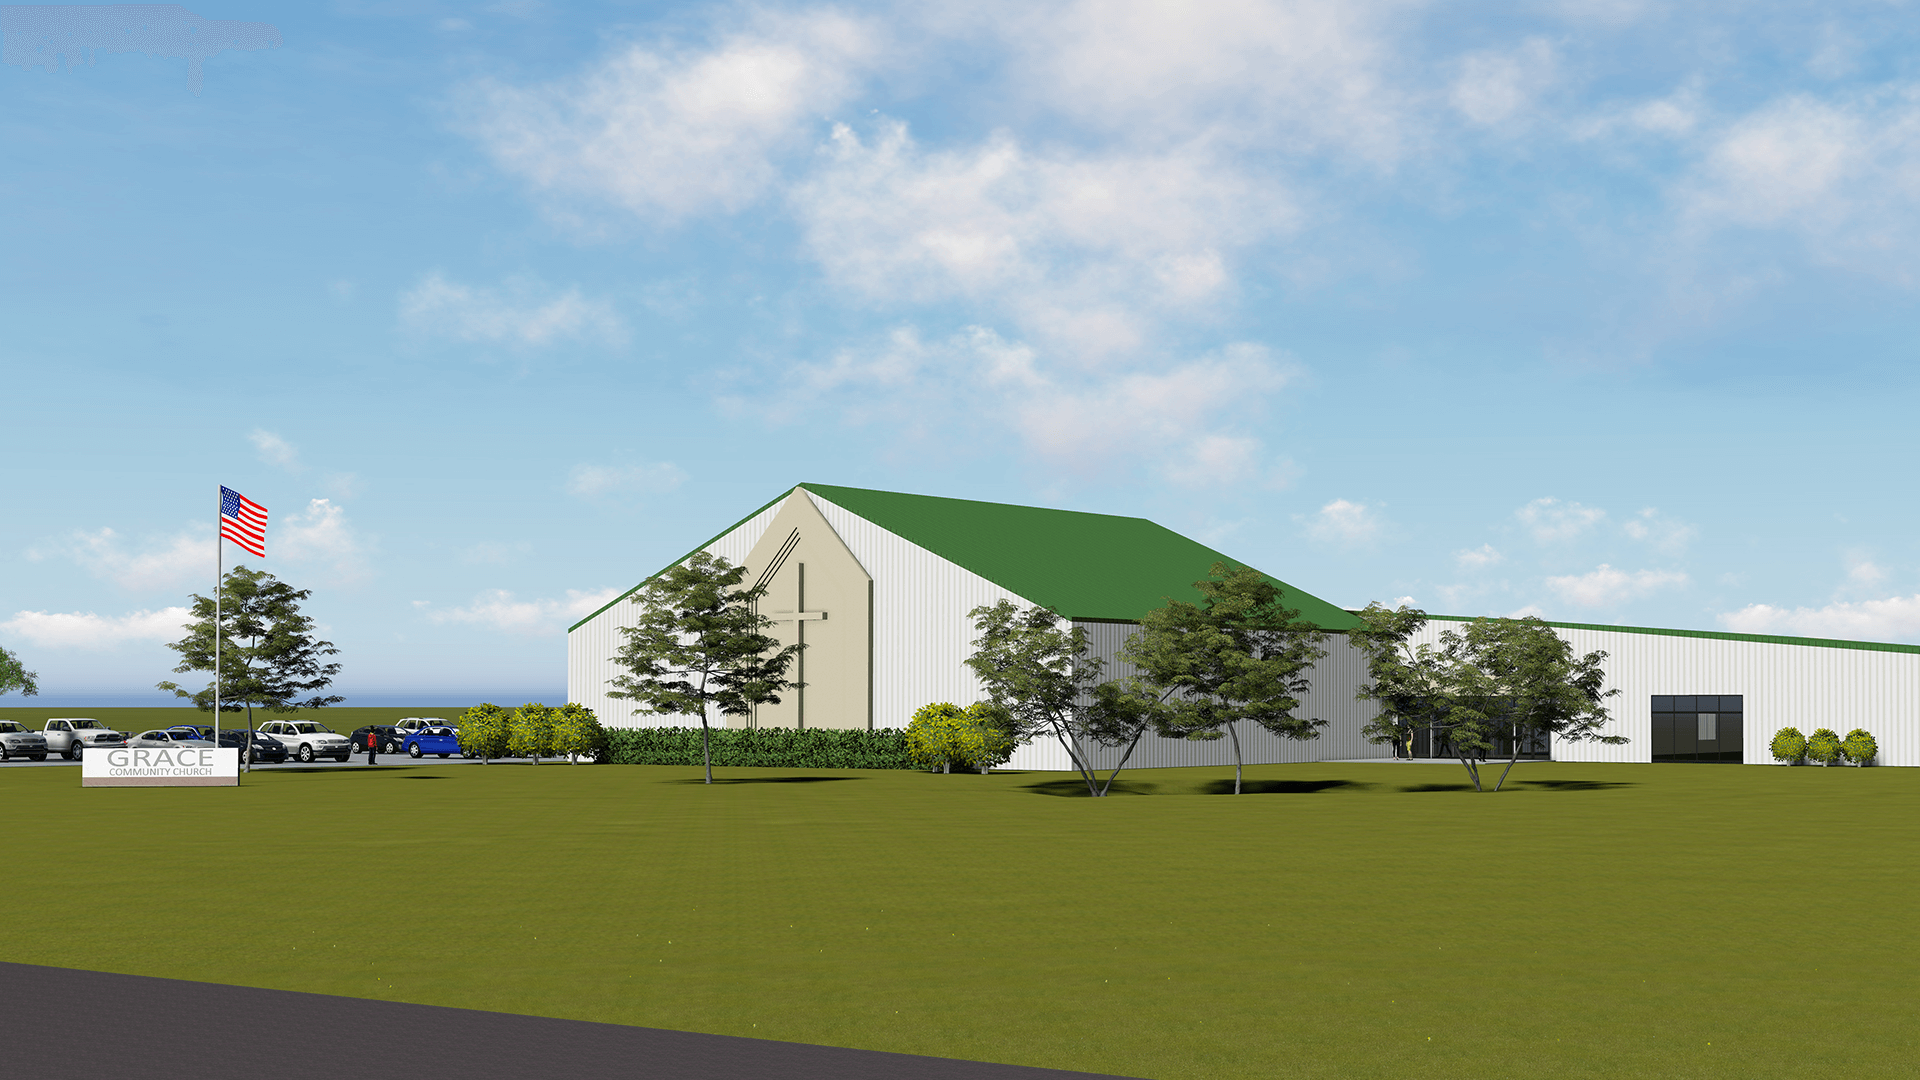 Church capital campaign architect rendering